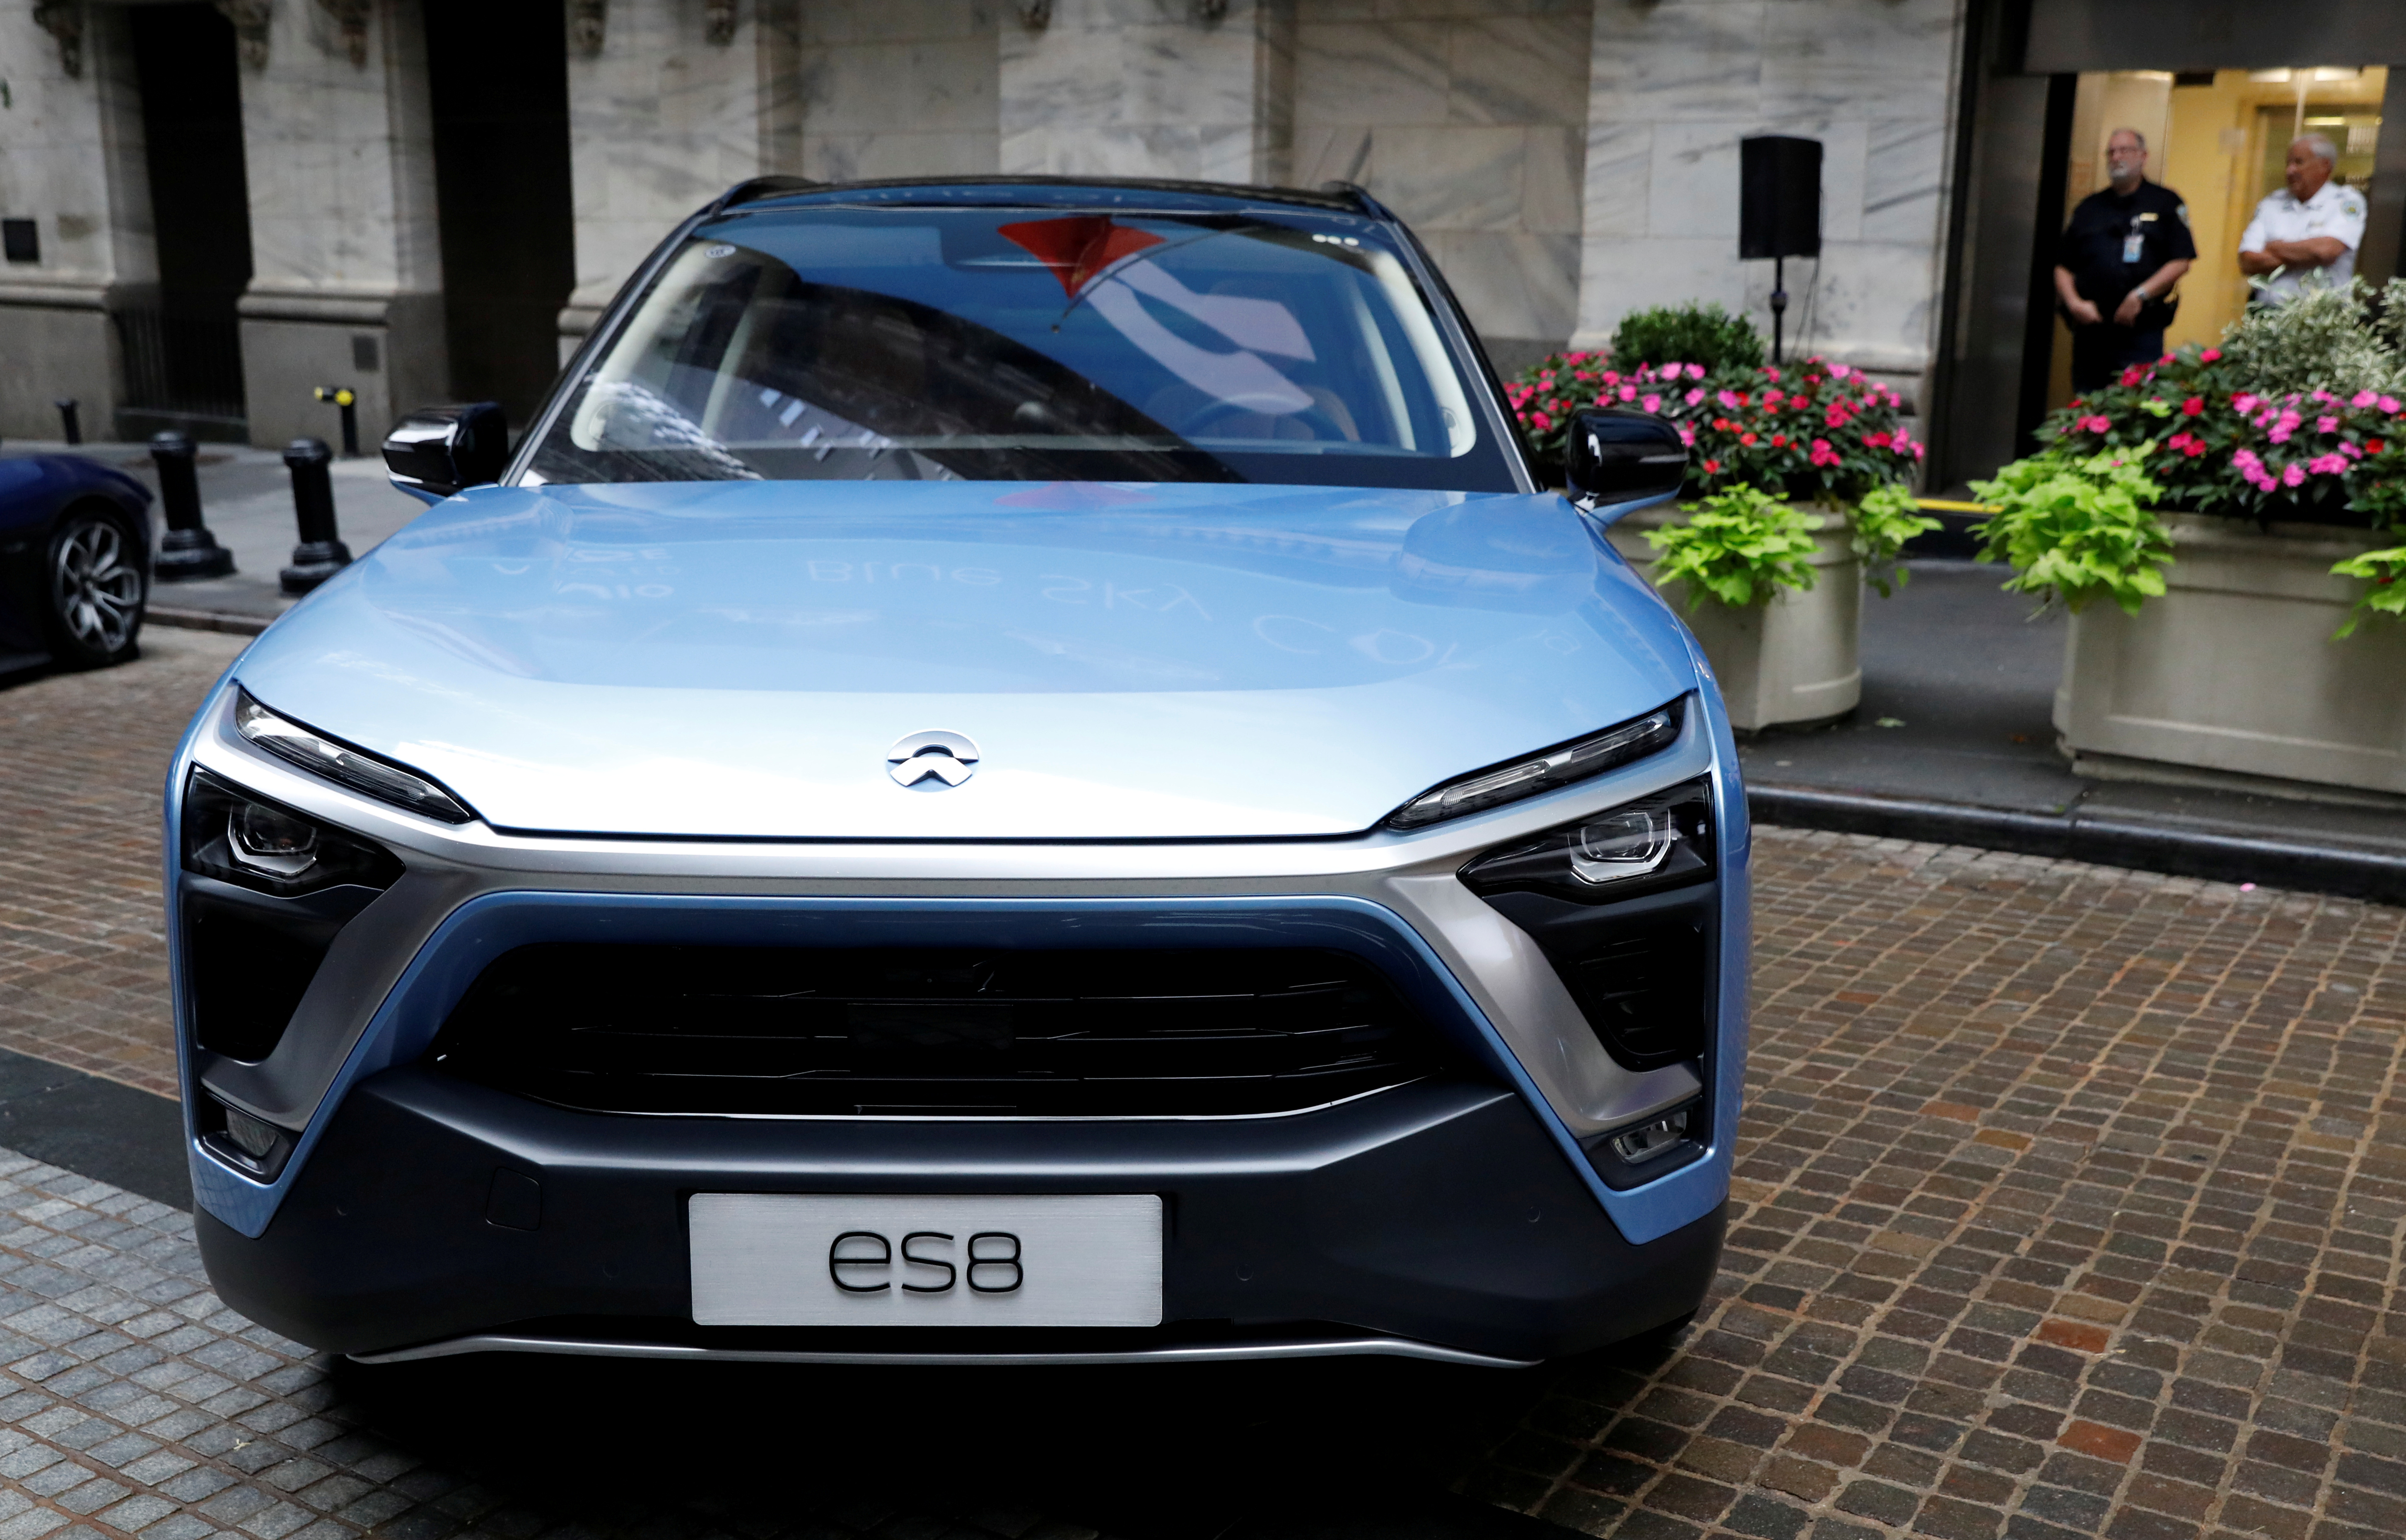 Chinese electric vehicle start-up Nio Inc. vehicles are on display in front of the New York Stock Exchange (NYSE) to celebrate the company's initial public offering (IPO) in New York, U.S., September 12, 2018.  REUTERS/Brendan McDermid/File Photo